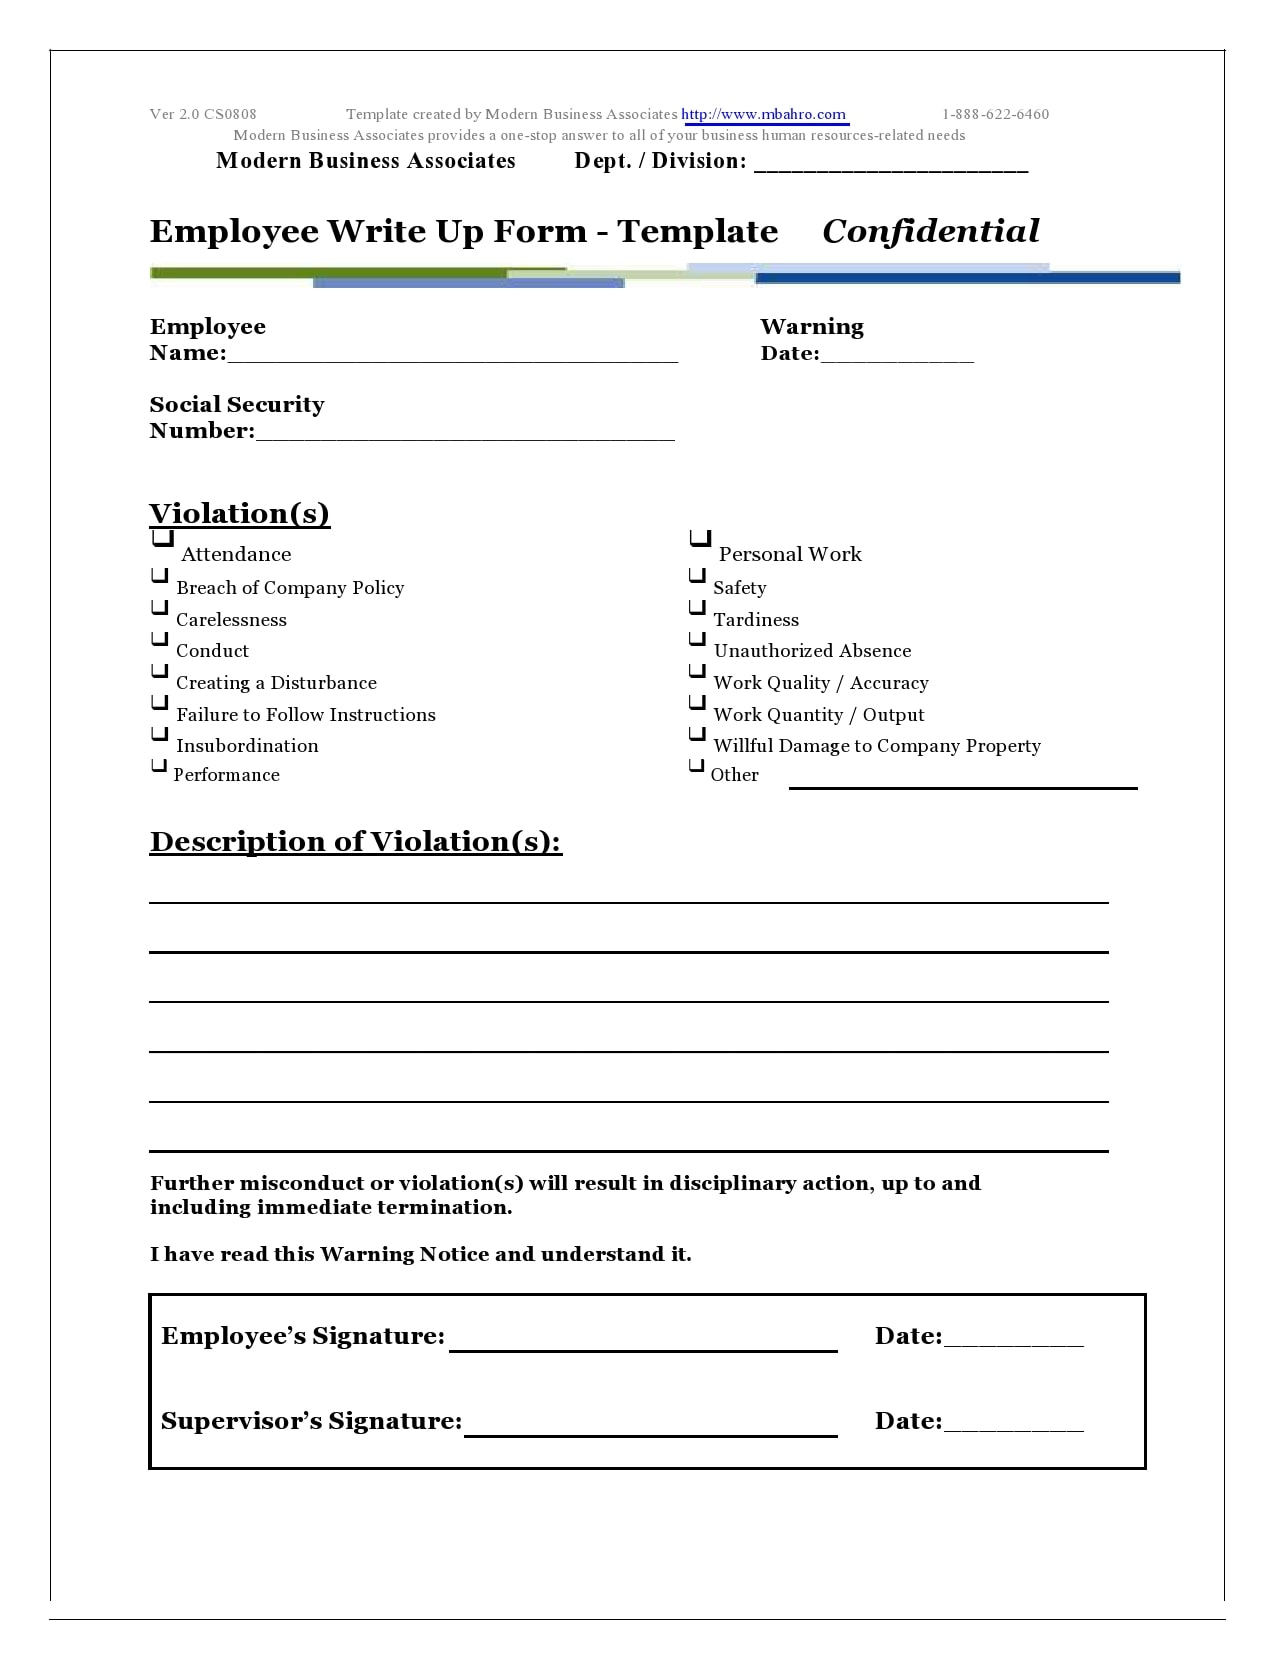 employee write up form 24